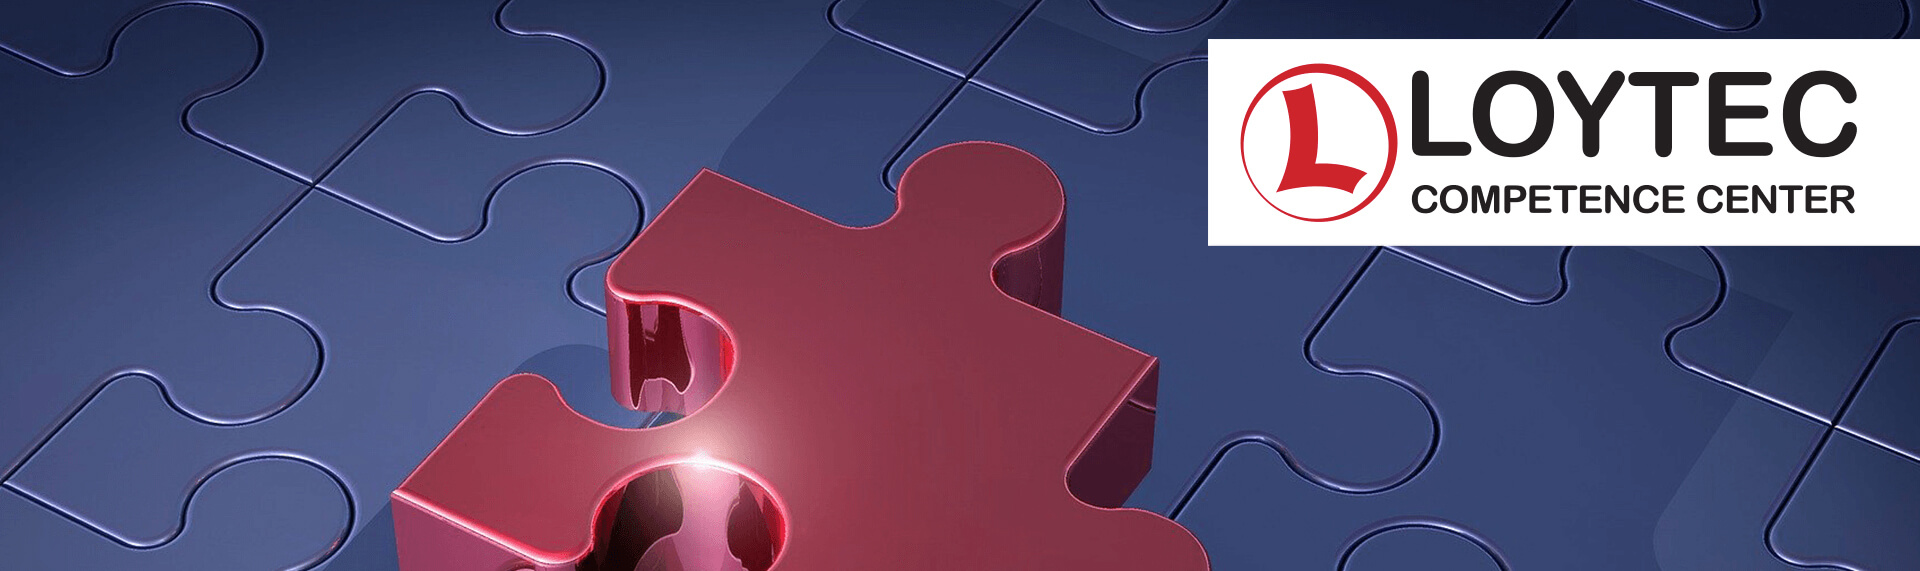 competence_center